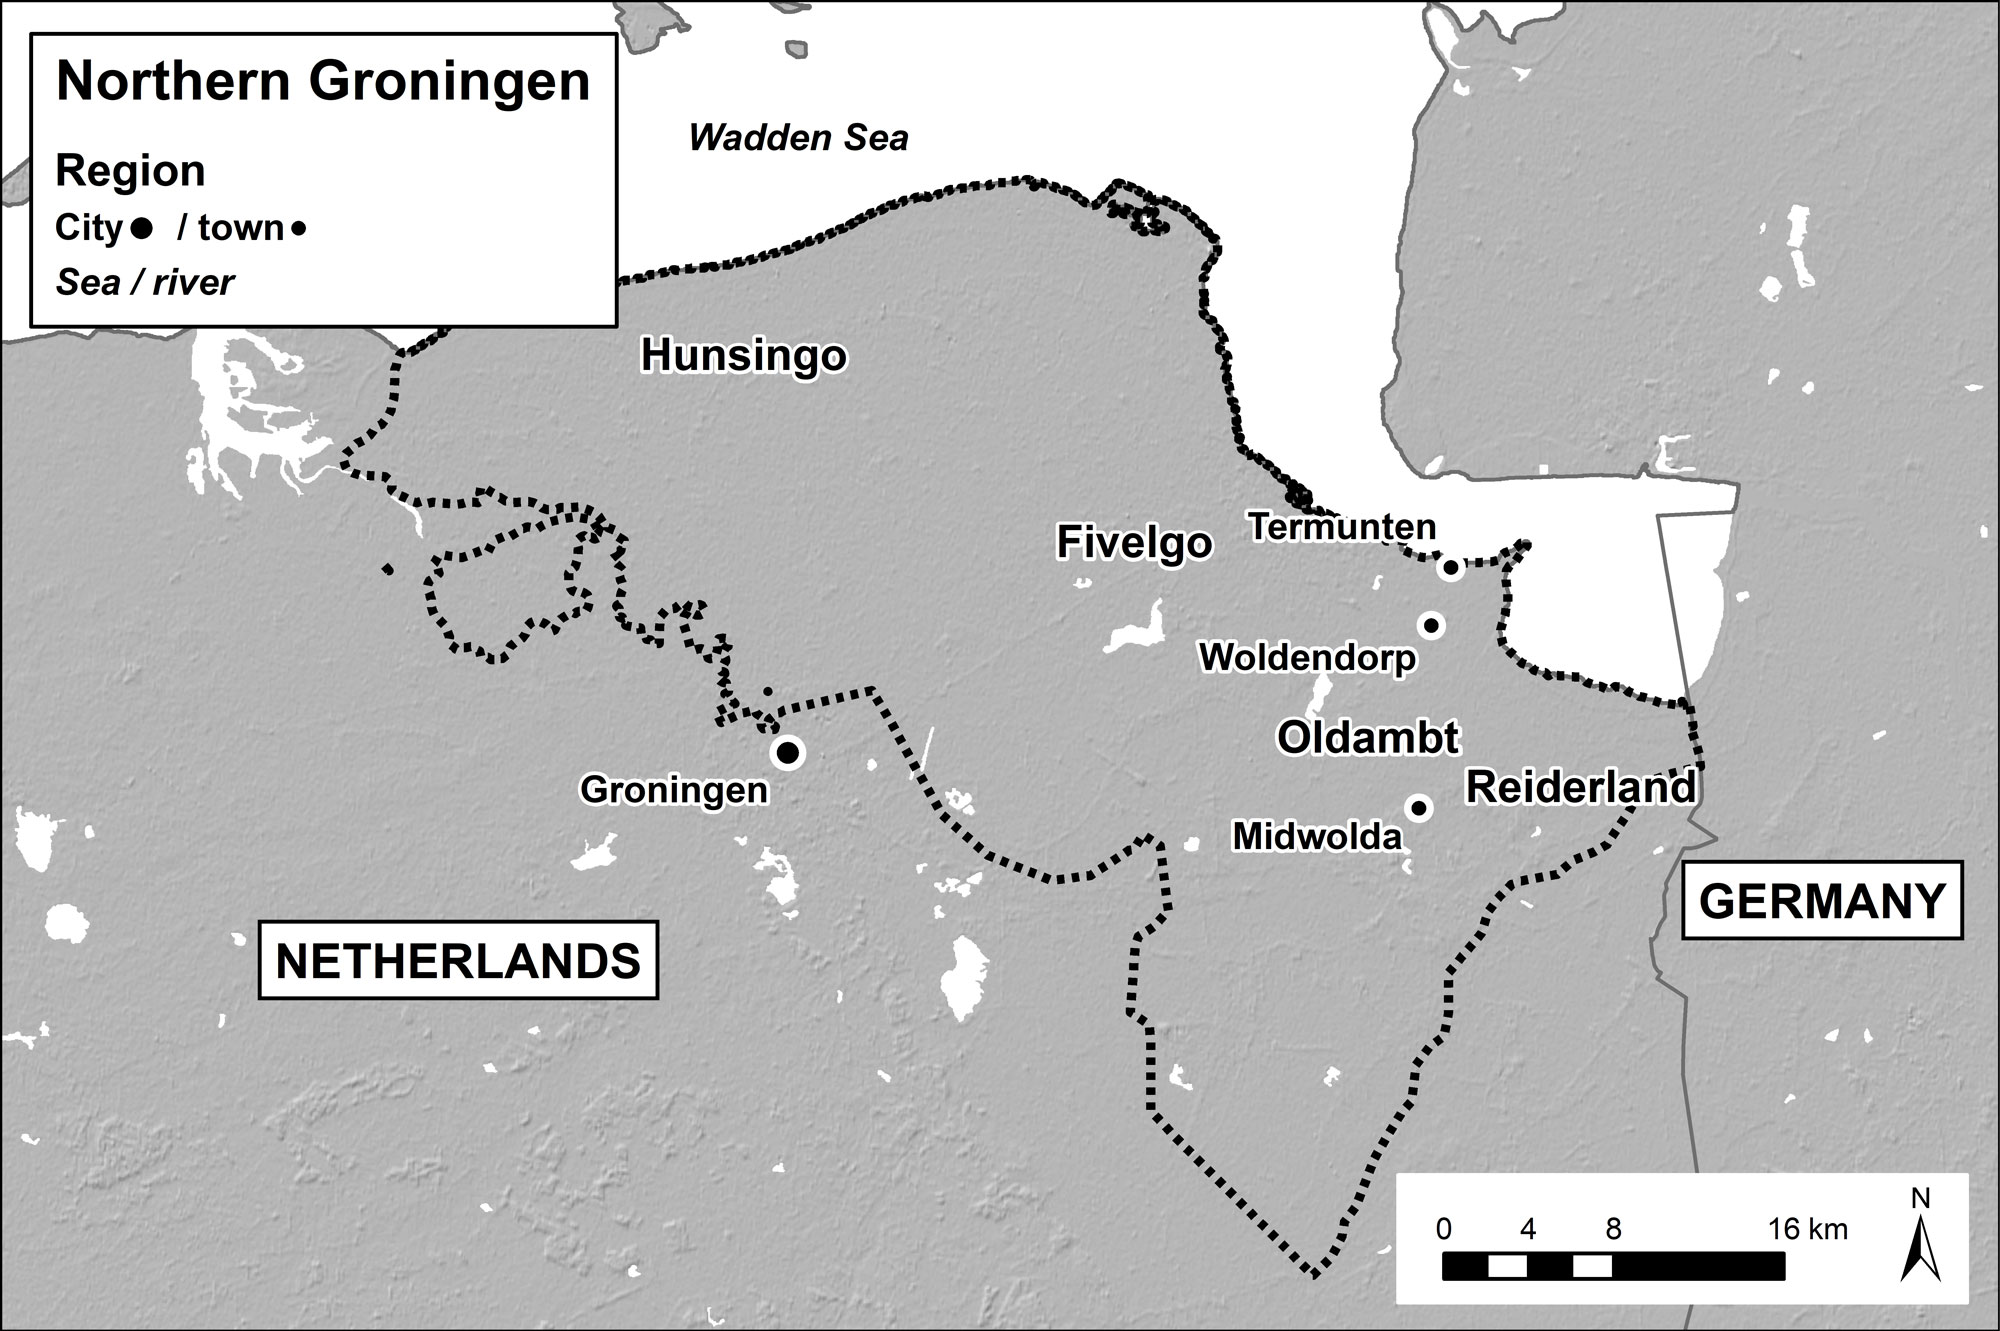 Fig. 4. Map of Northern Groningen, indicating the localities ...